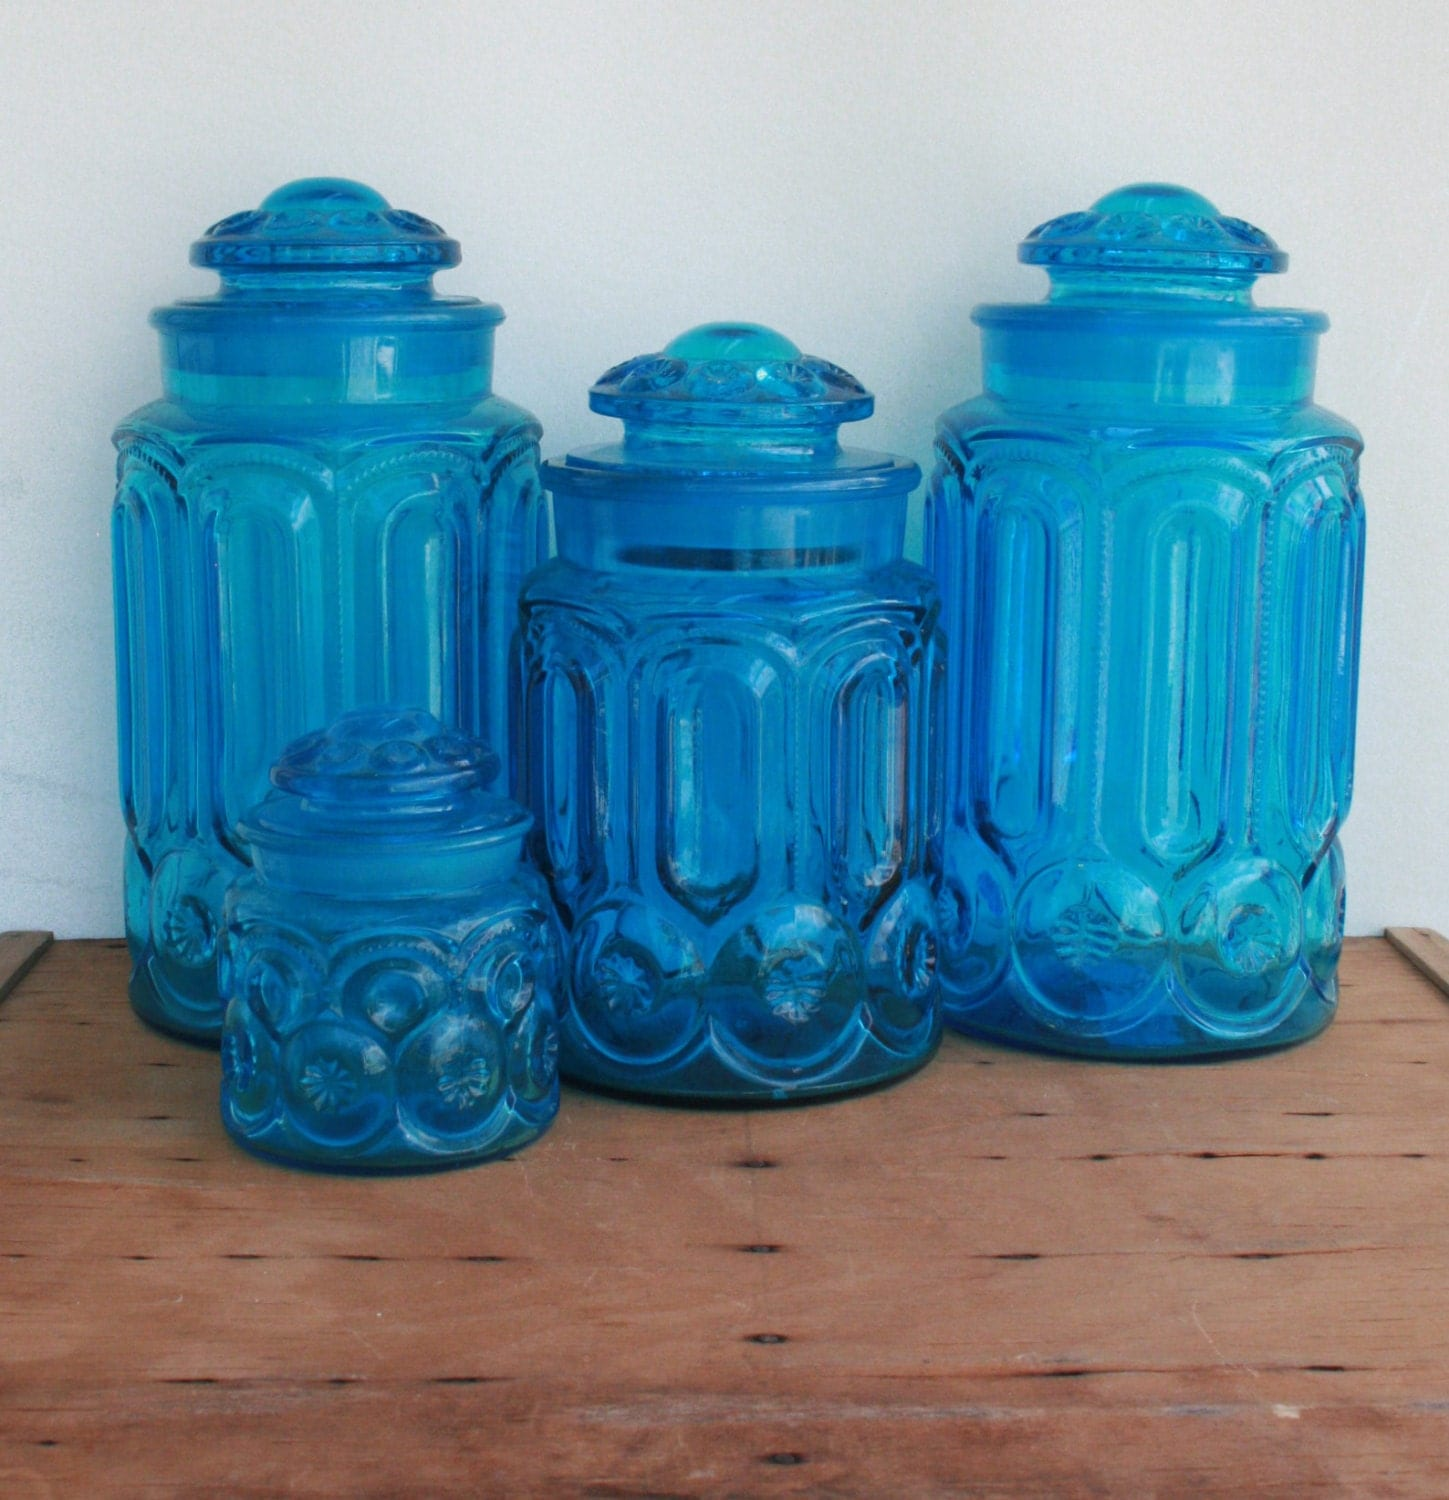 moon and stars vintage canister set teal vintage kitchen teal canisters by sun porch studio set of 4